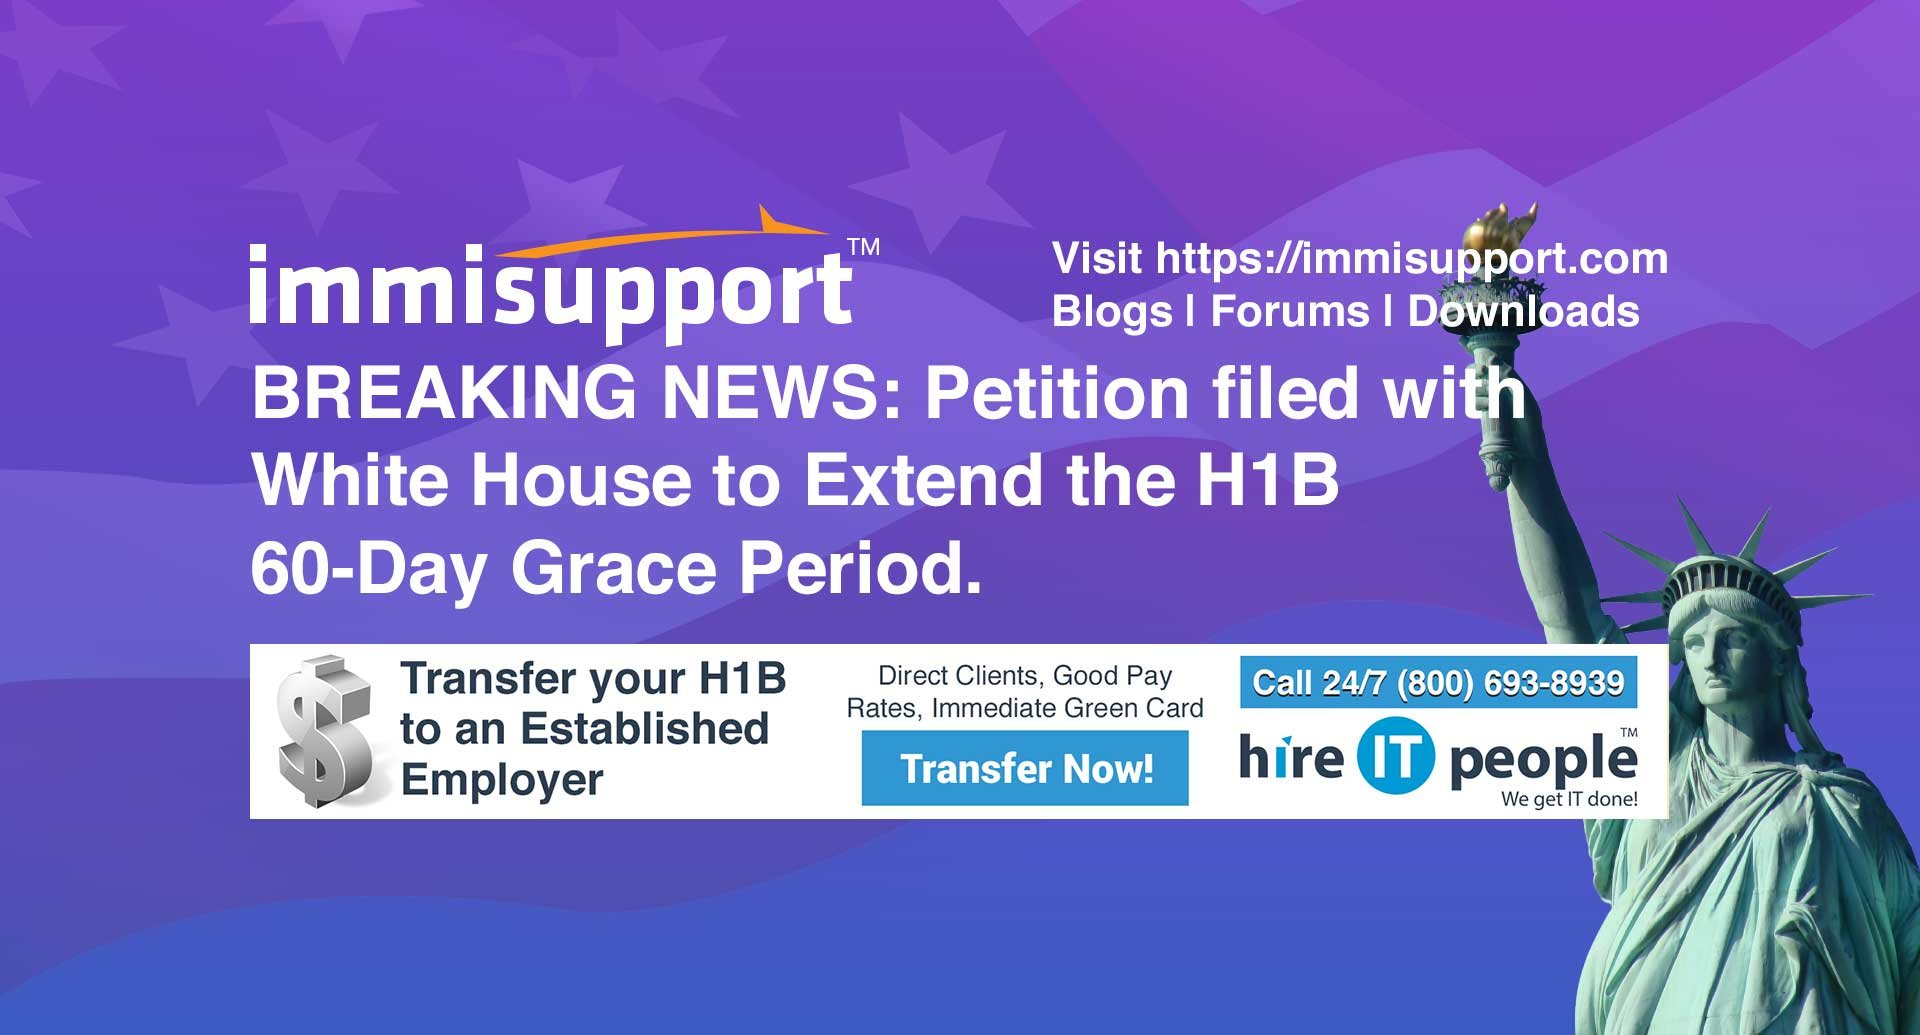 BREAKING NEWS: Petition filed with White House to Extend the H1B 60-Day Grace Period.